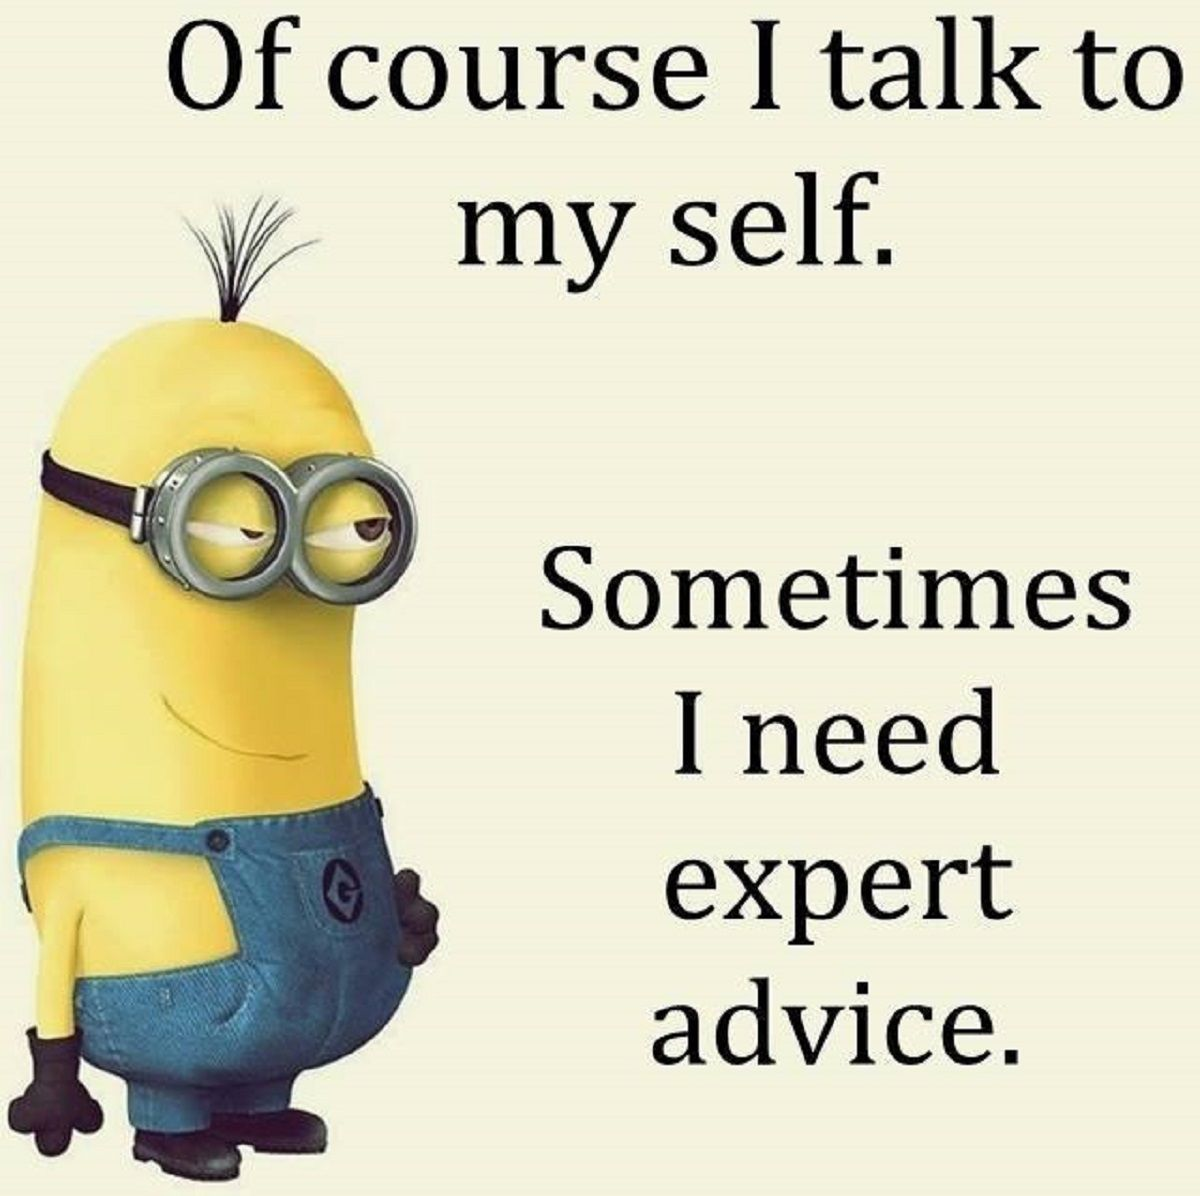 The Funniest Minion Quotes Of The Week Love Minions Check Out All O F This Minions Stuff Funny Minion Memes Funny Minion Pictures Funny Minion Quotes